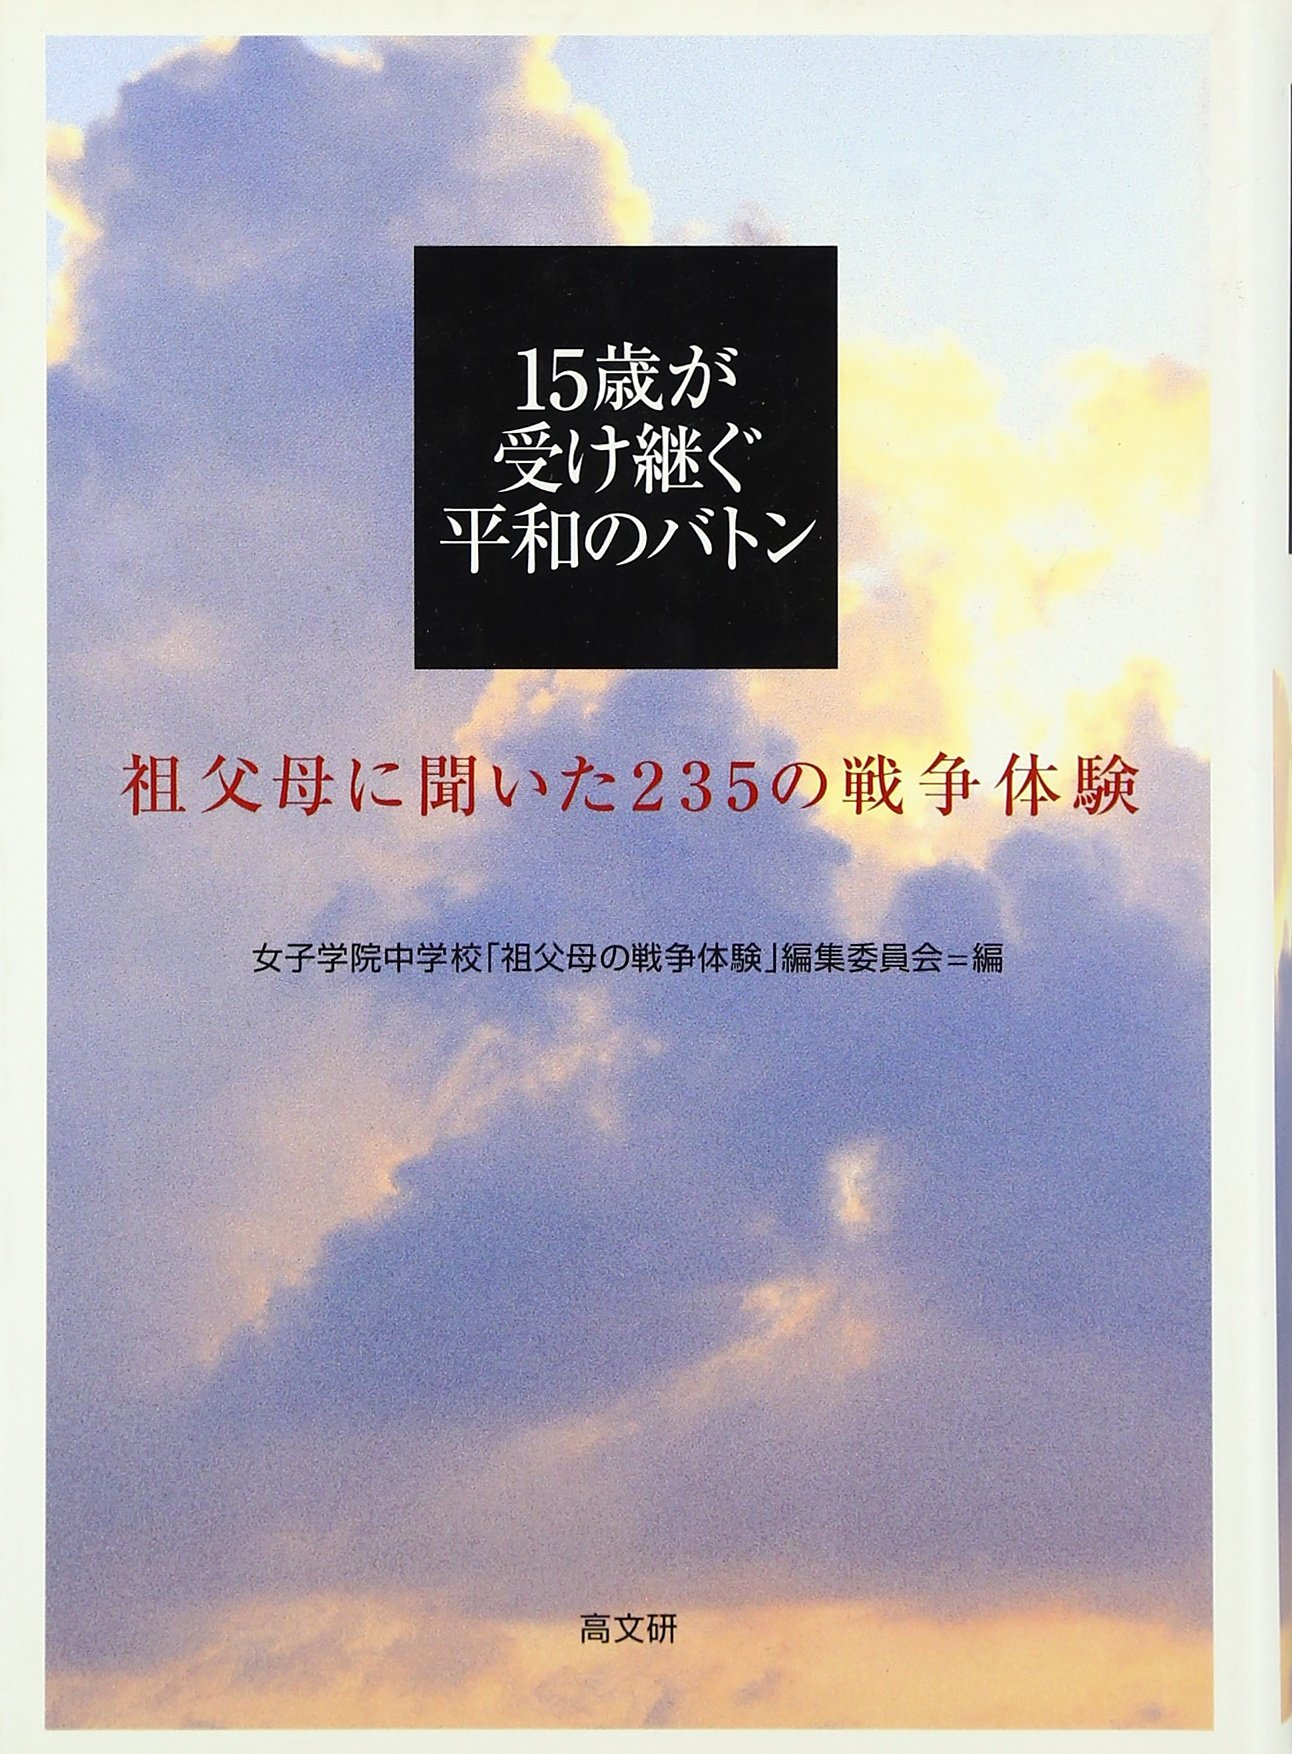 Download war experience of 235 heard the grandparents - baton of peace 15-year-old inherit ISBN: 4874983189 (2004) [Japanese Import] pdf